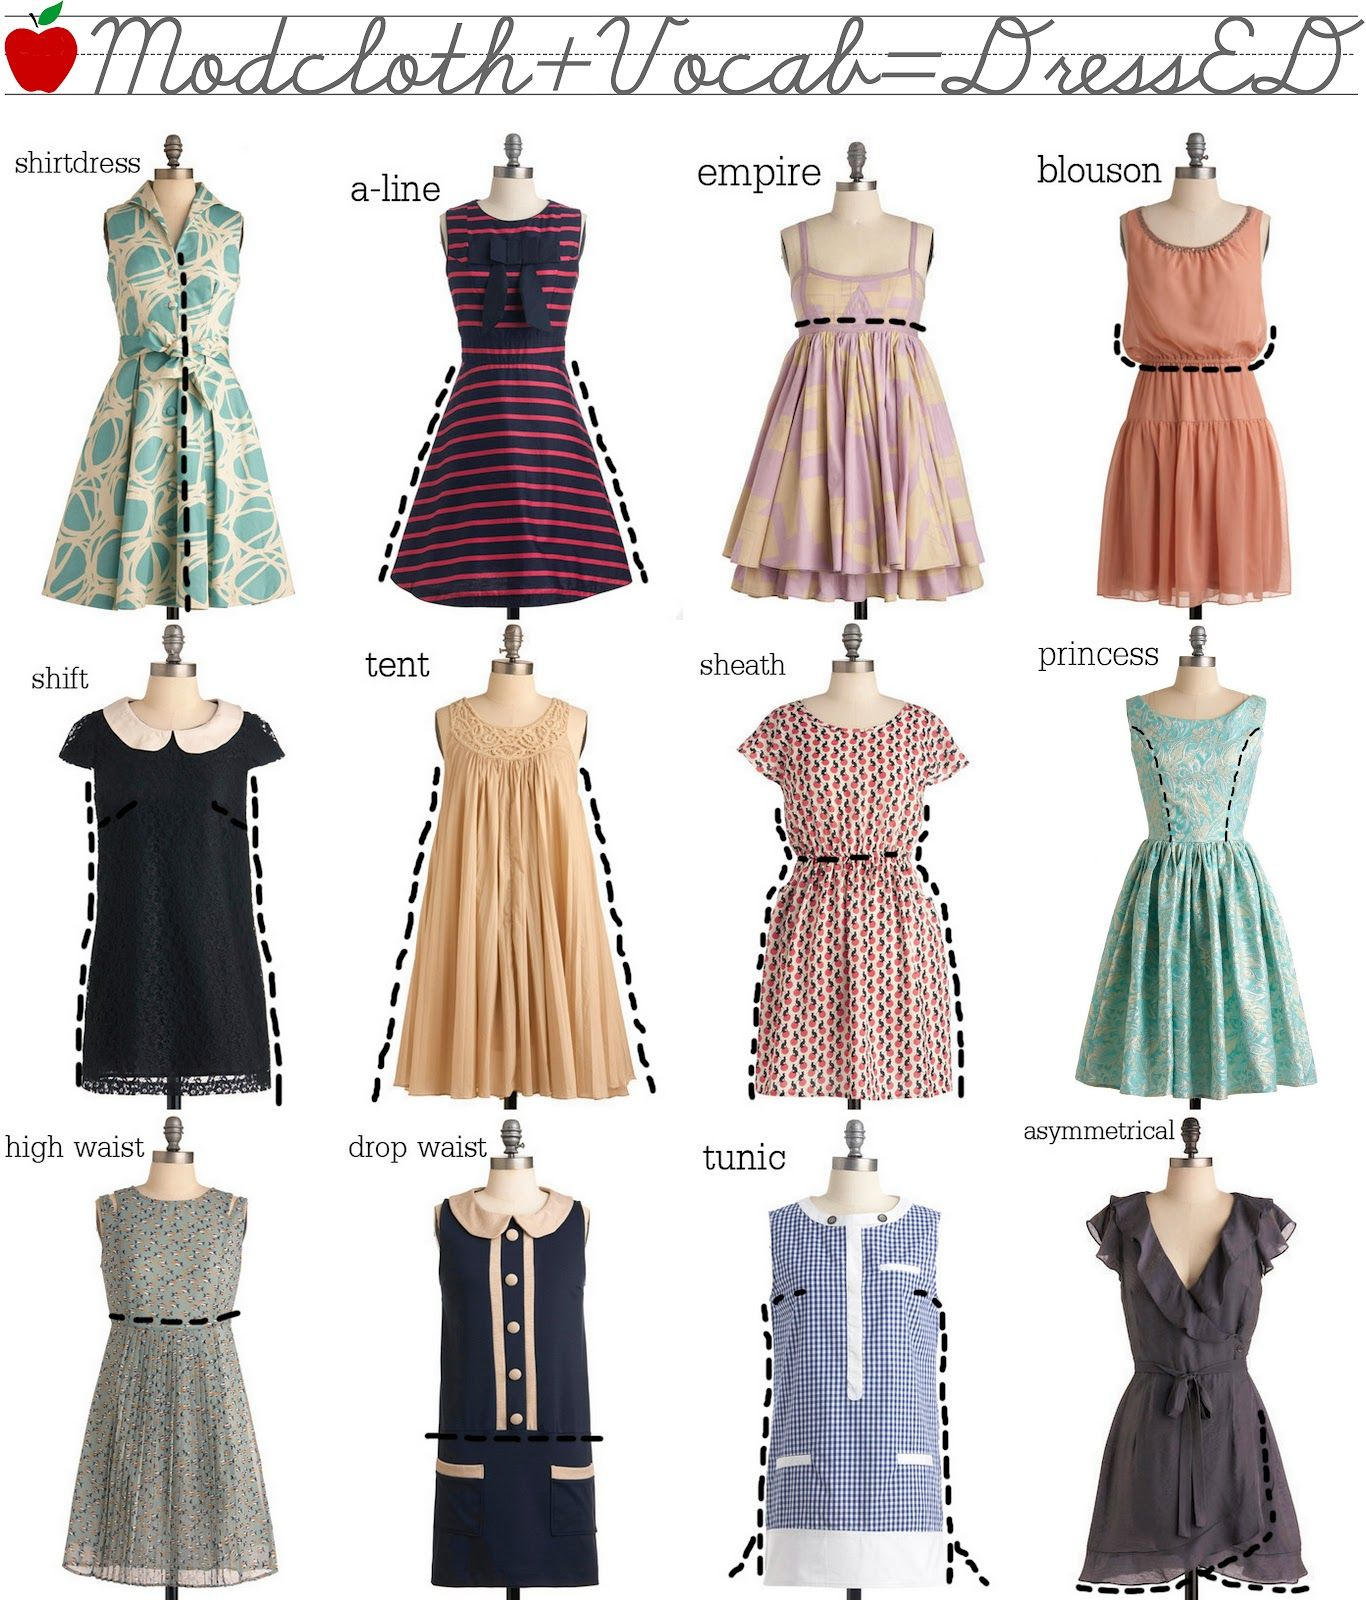 You Can 39 T Demand People Give You Things If You Don 39 T Even Know The Names Dresses Pinterest